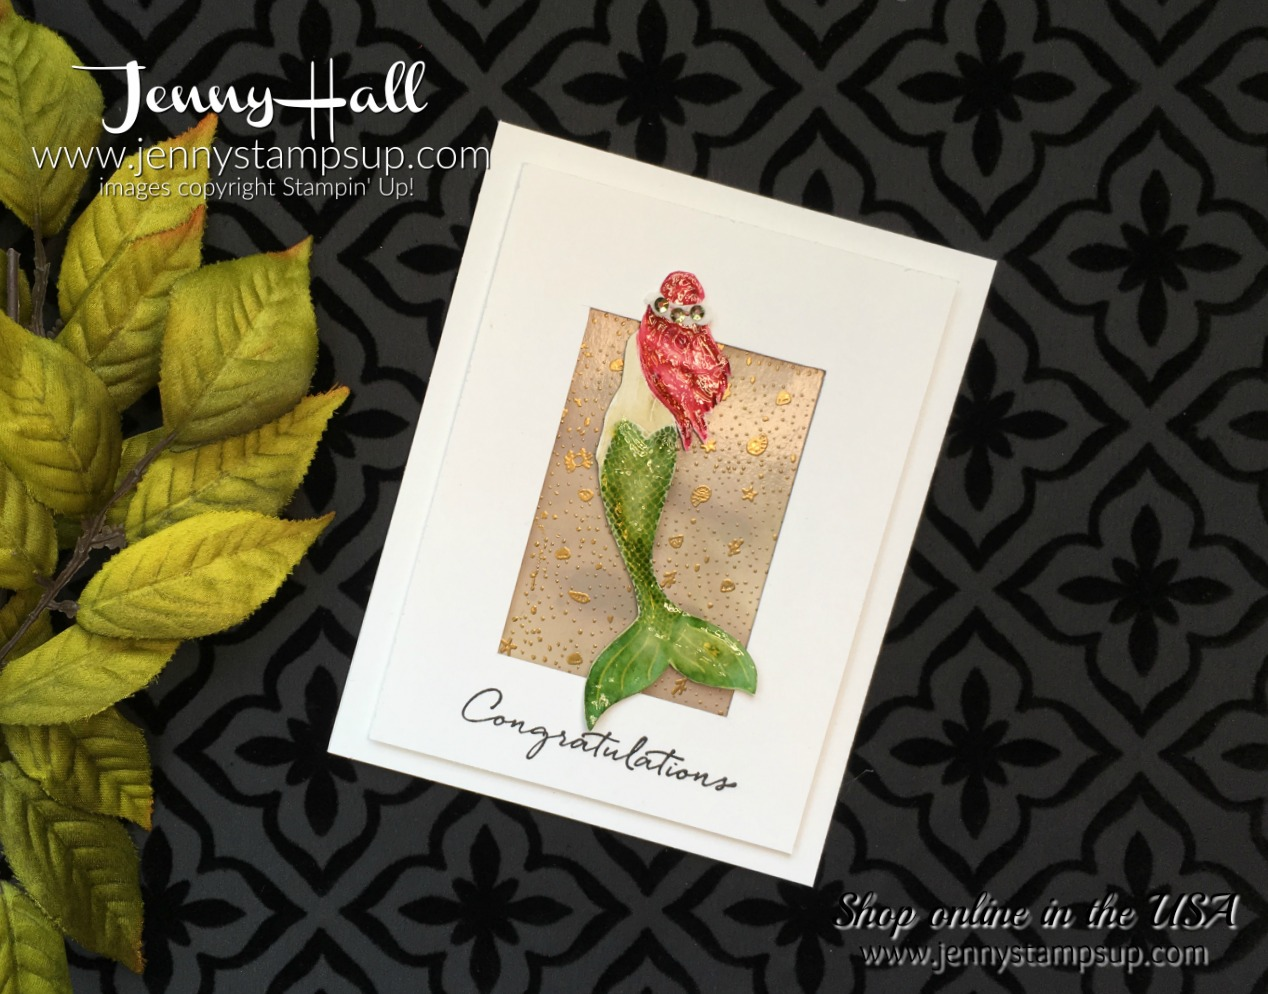 Watercoloring Magical Mermaid cardmaking papercrafts scrapbooking and more at Jenny Hall Design at www.jennyhalldesign.com